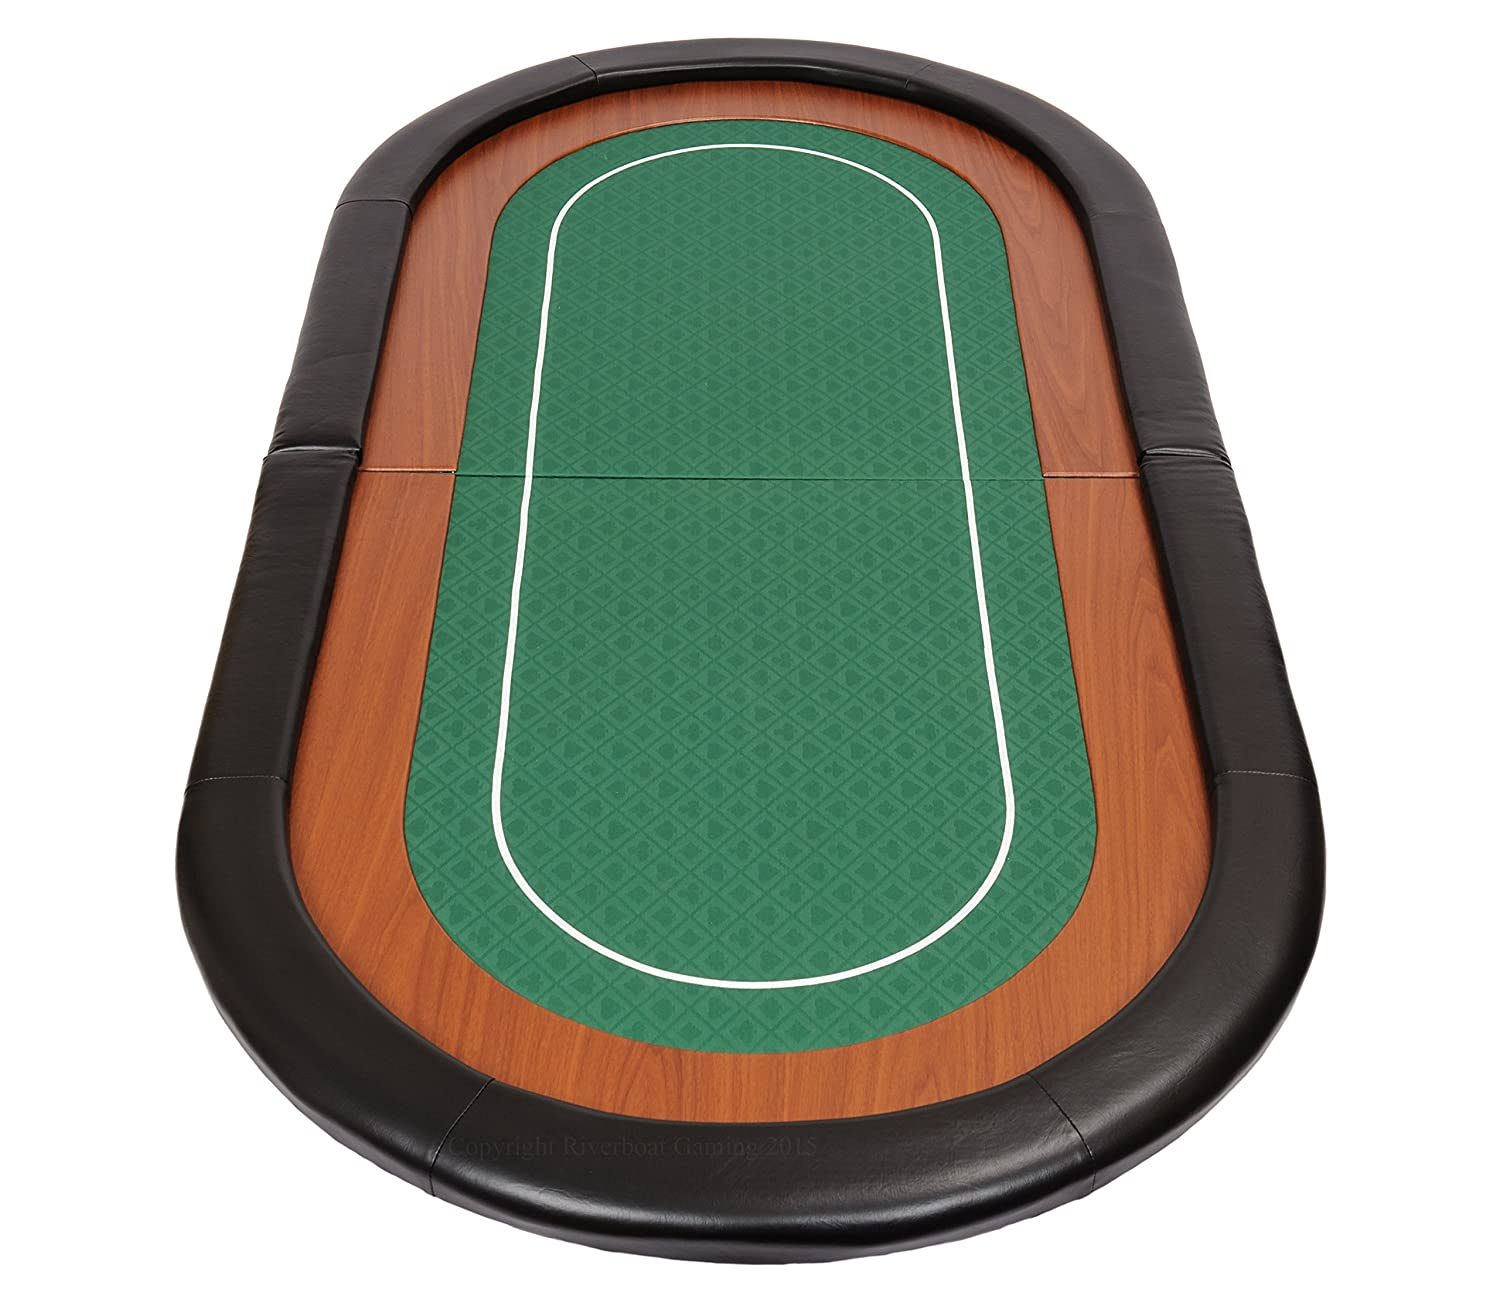 Champion Folding Poker Table Top in Green Speed Cloth and Faux